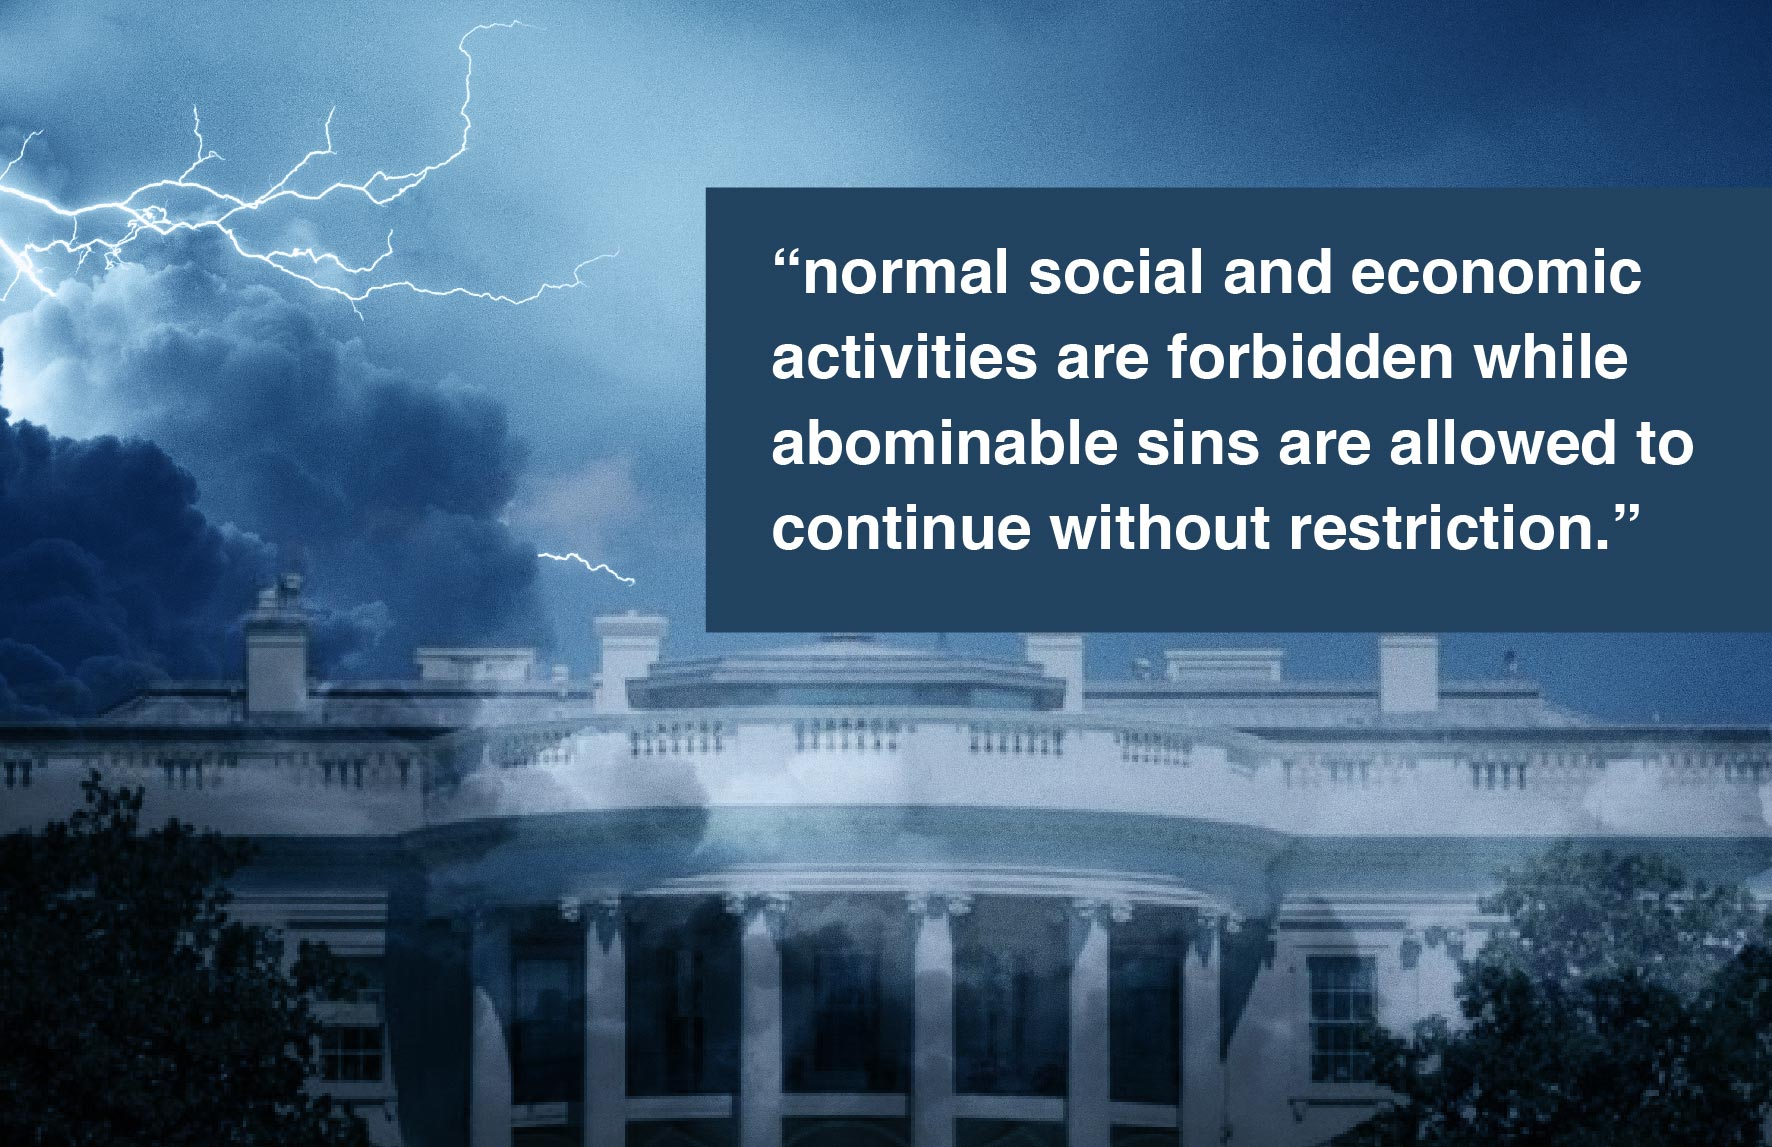 """Thunderstorm at the White House with quote """"normal social and economic activities are forbidden while abominable sins are allowed to continue without restriction."""""""